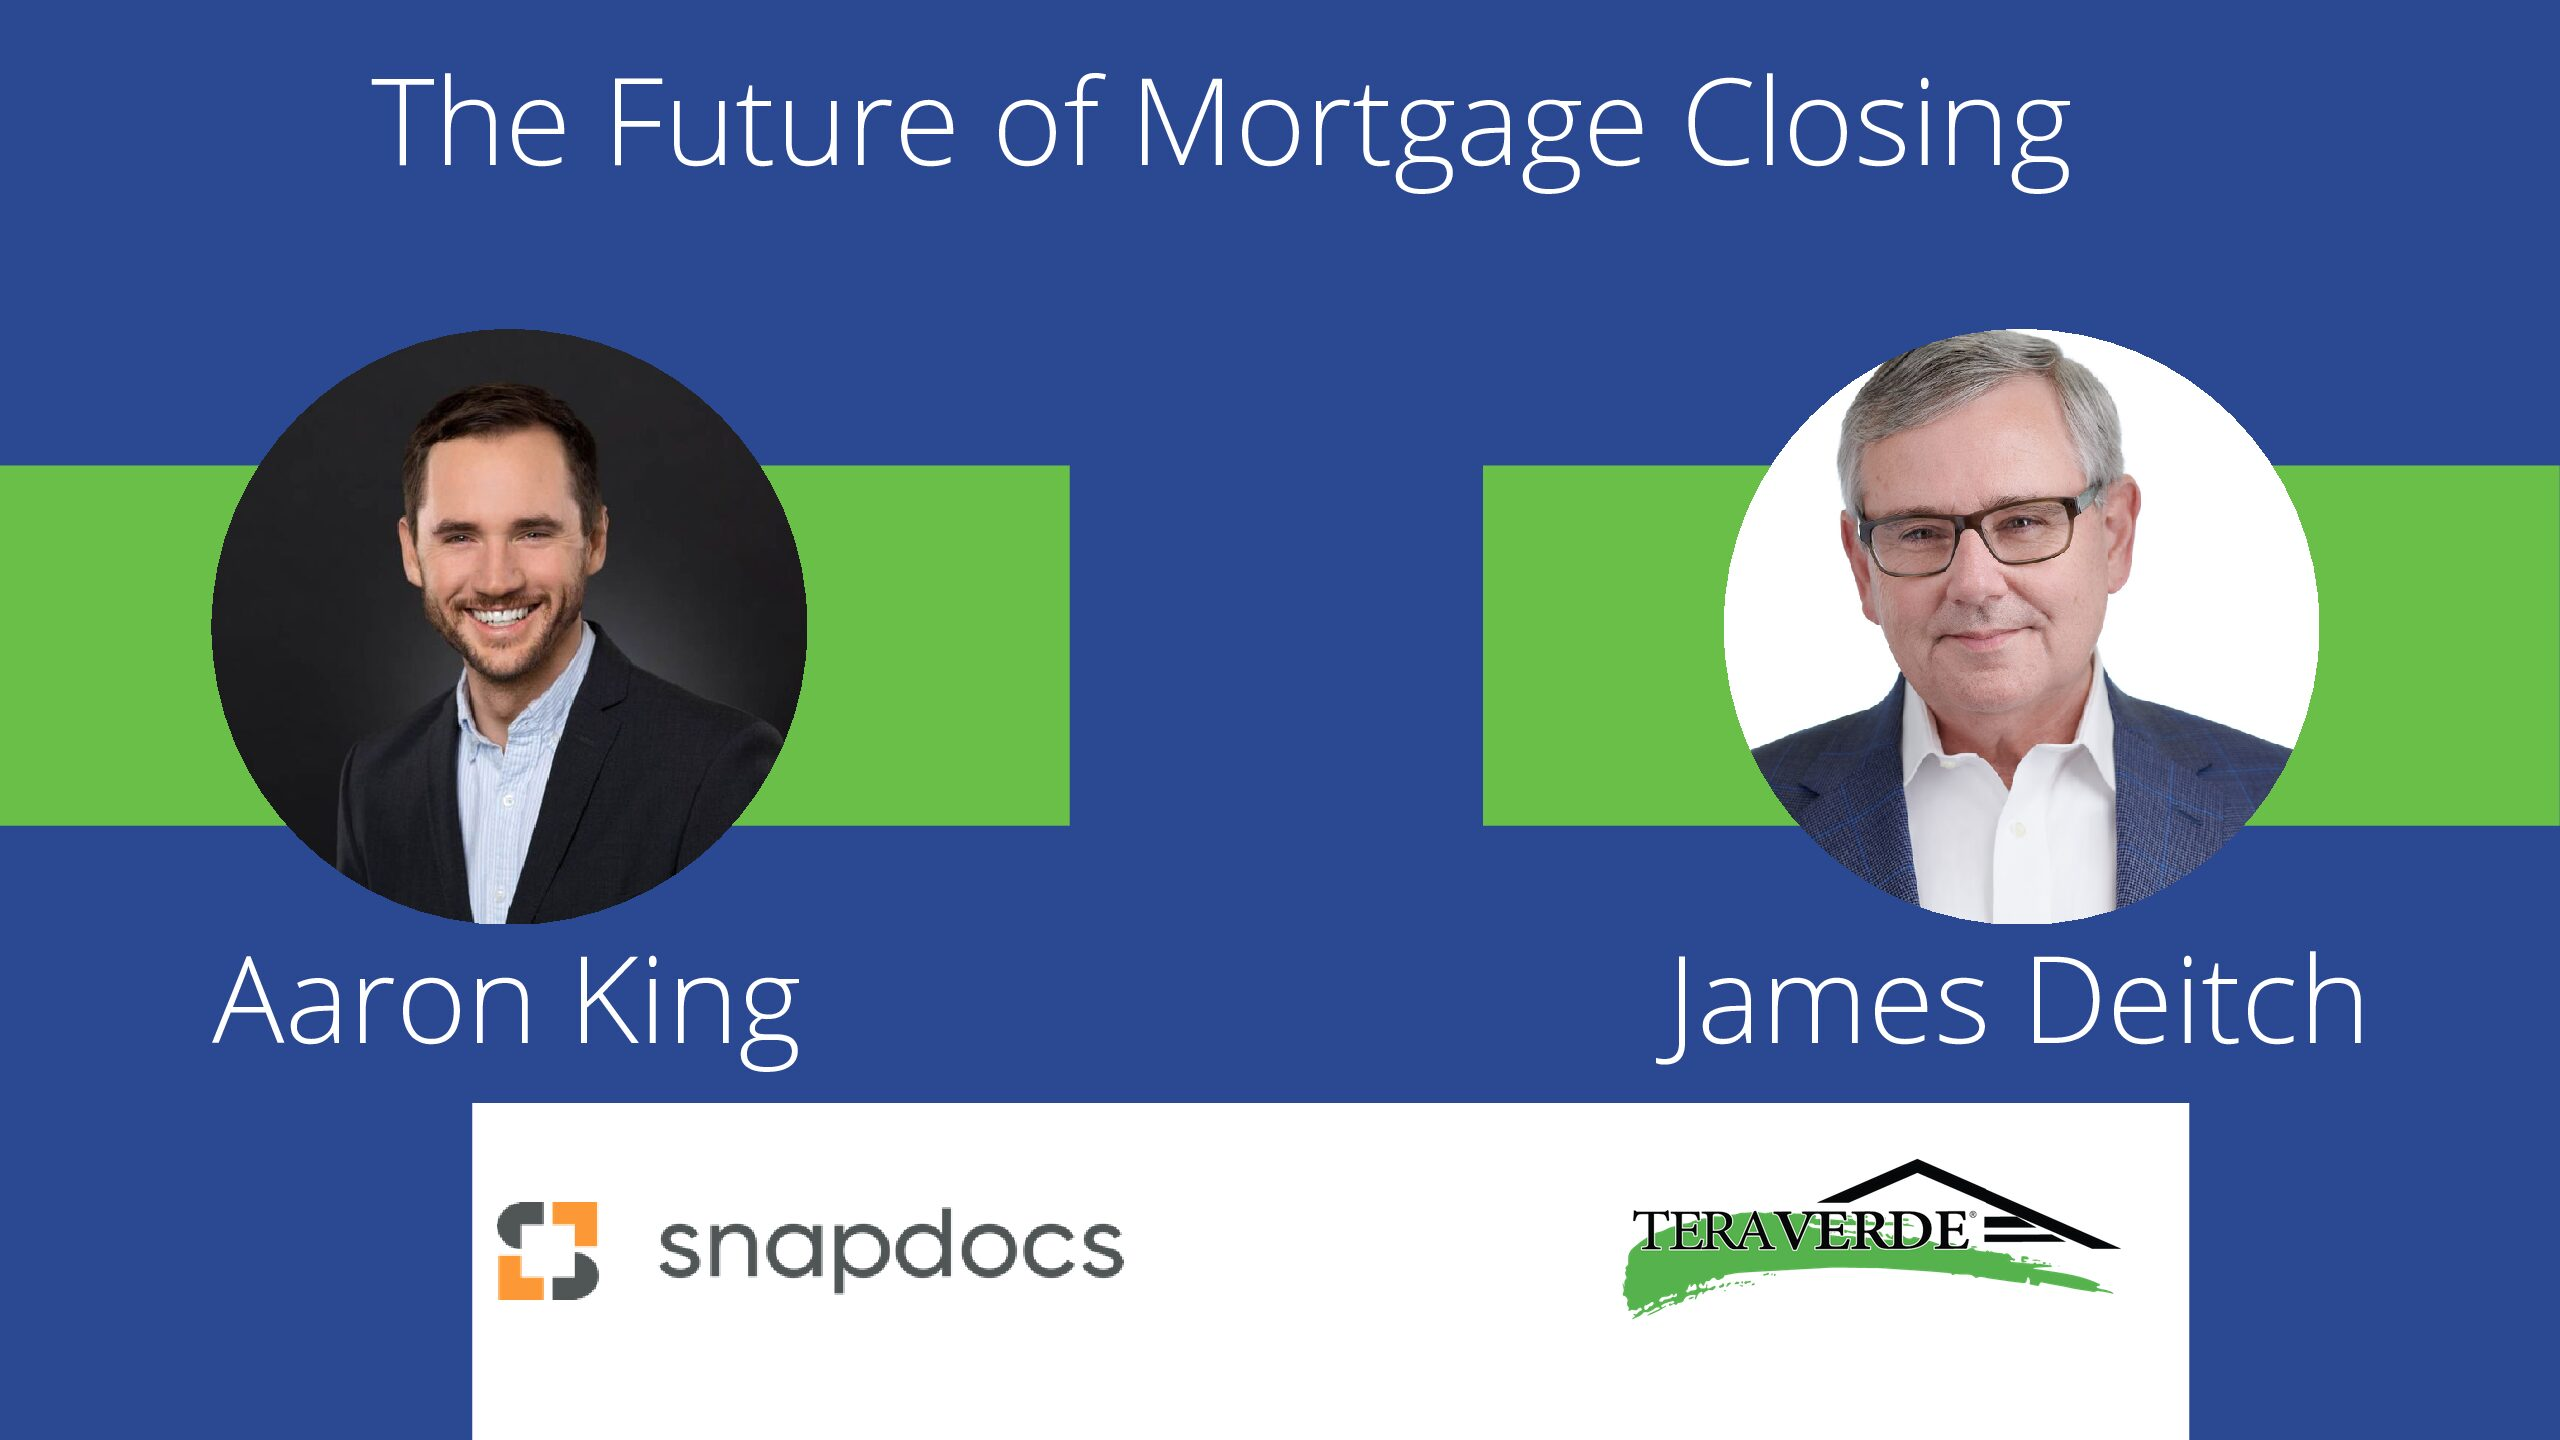 The Future of Mortgage Closing with Aaron King